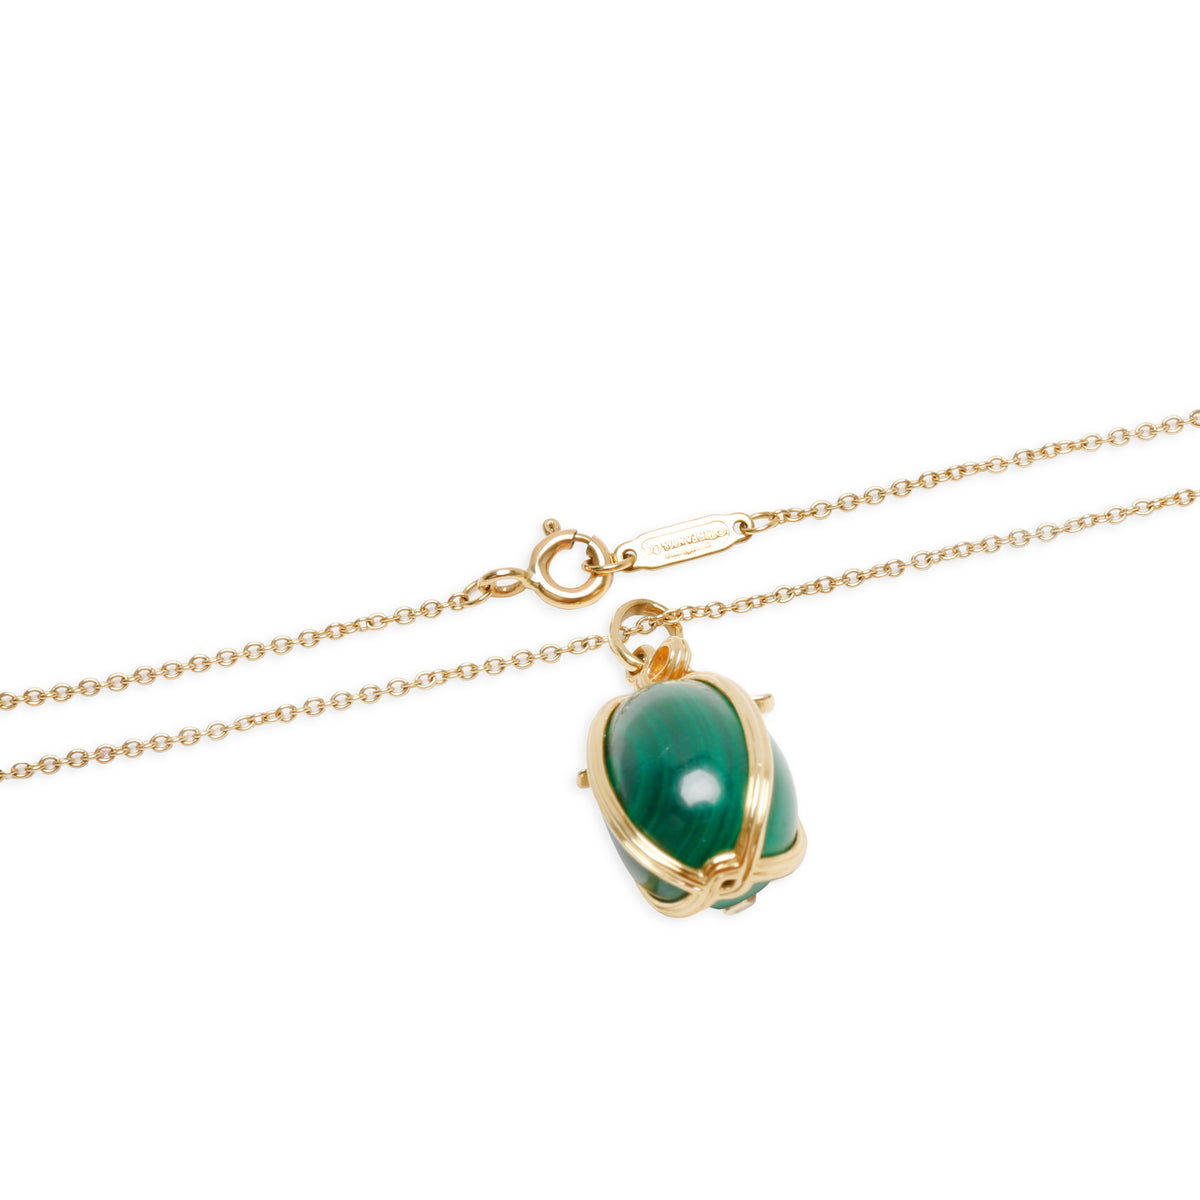 Tiffany & Co. Schlumberger Malachite Egg Charm Pendant in 18K Yellow Gold